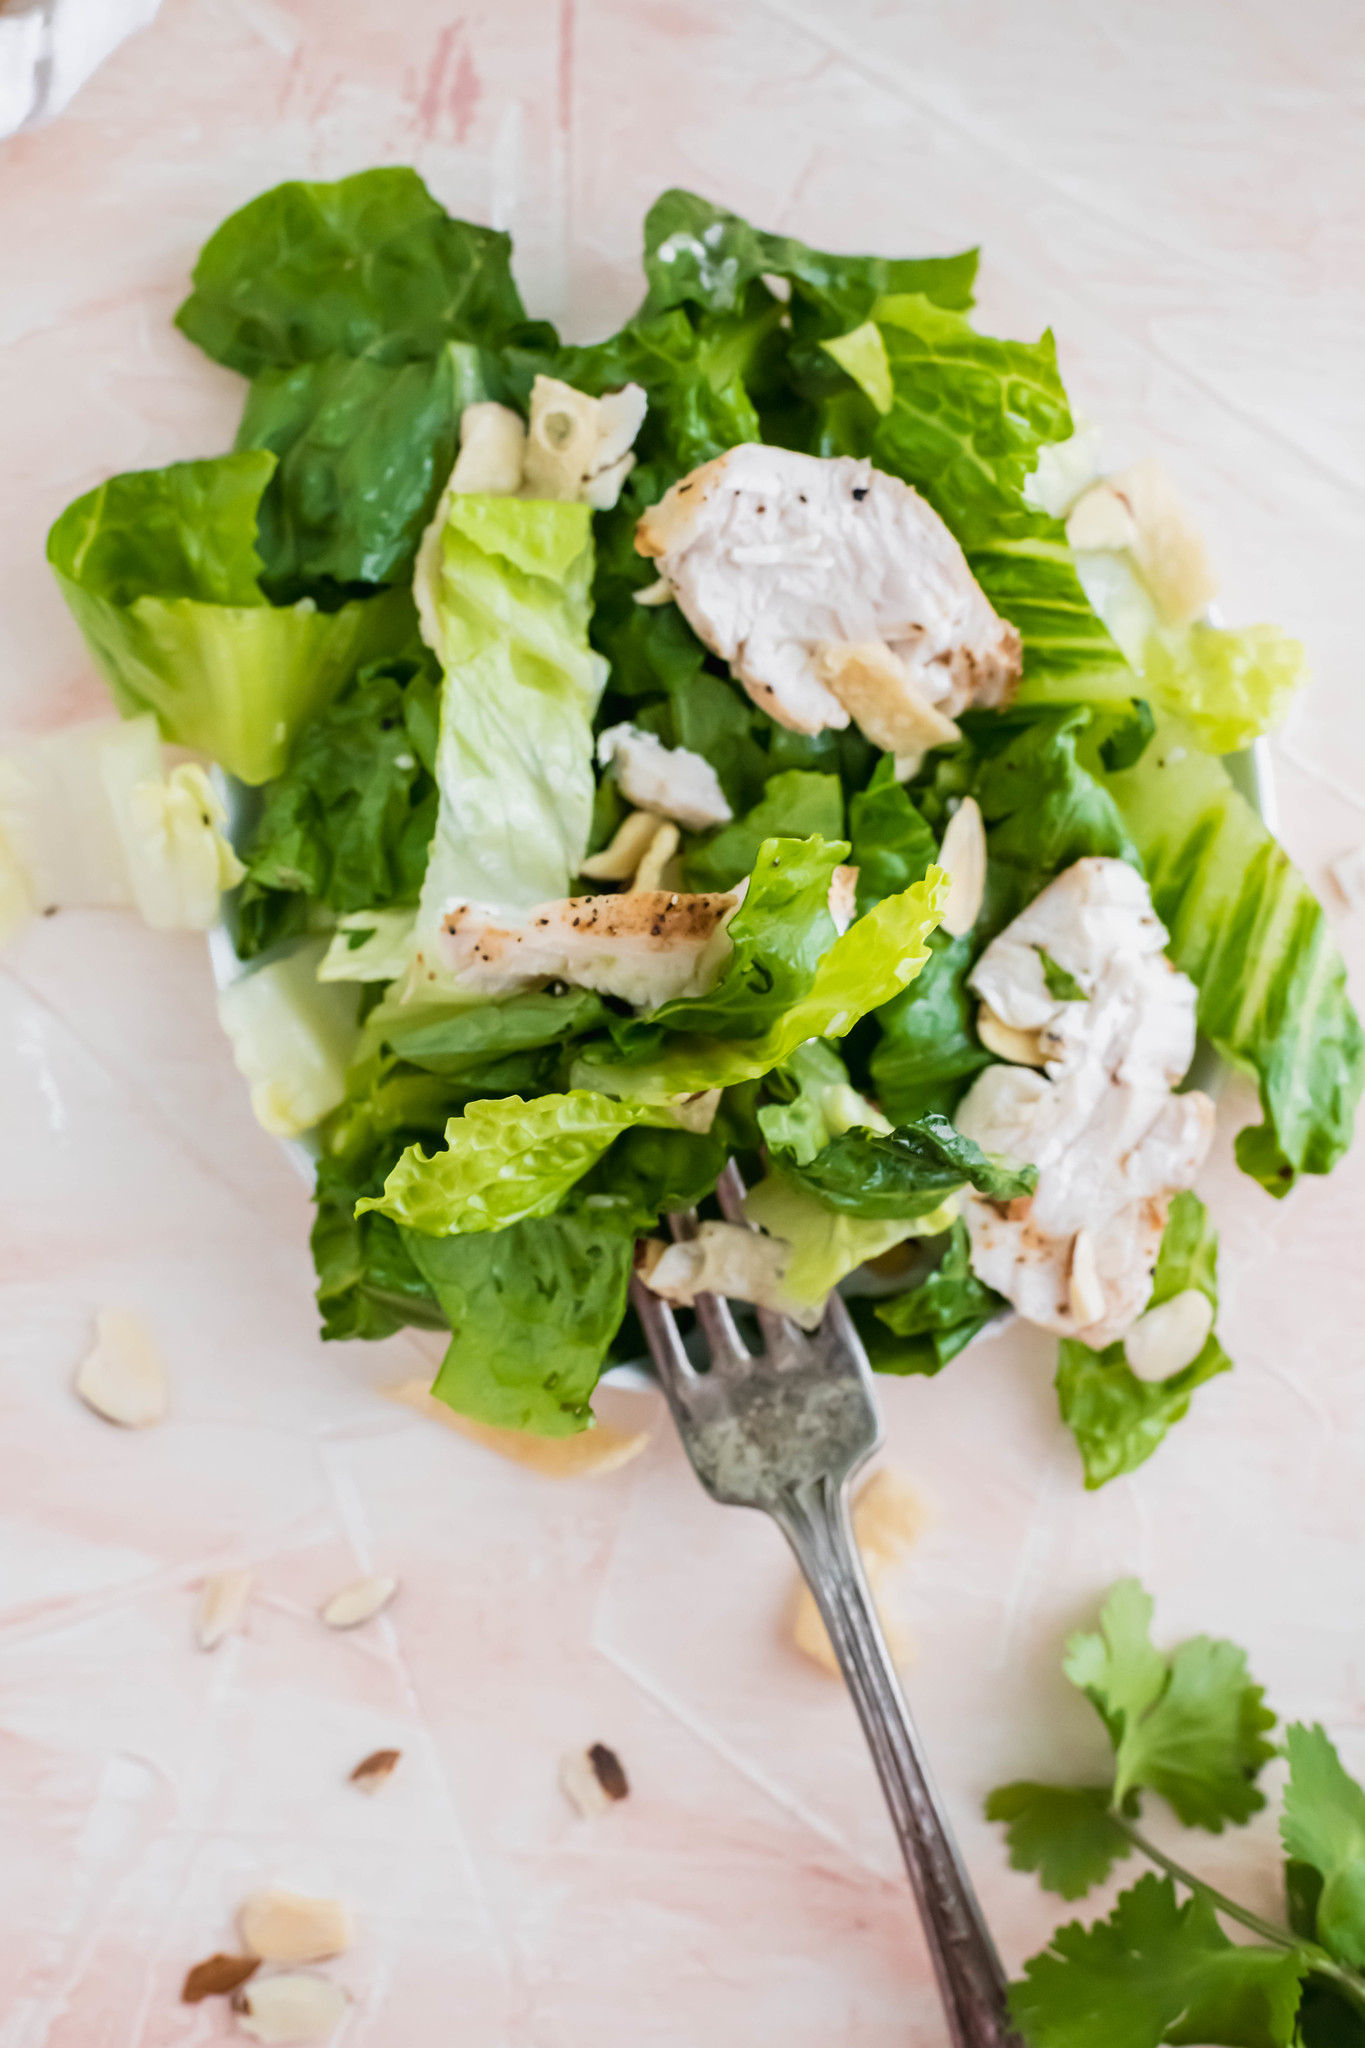 Make your favorite salad at home with this recipe for Panera's Asian Sesame Chicken Salad. It tastes JUST like the restaurant version at a fraction of the cost.